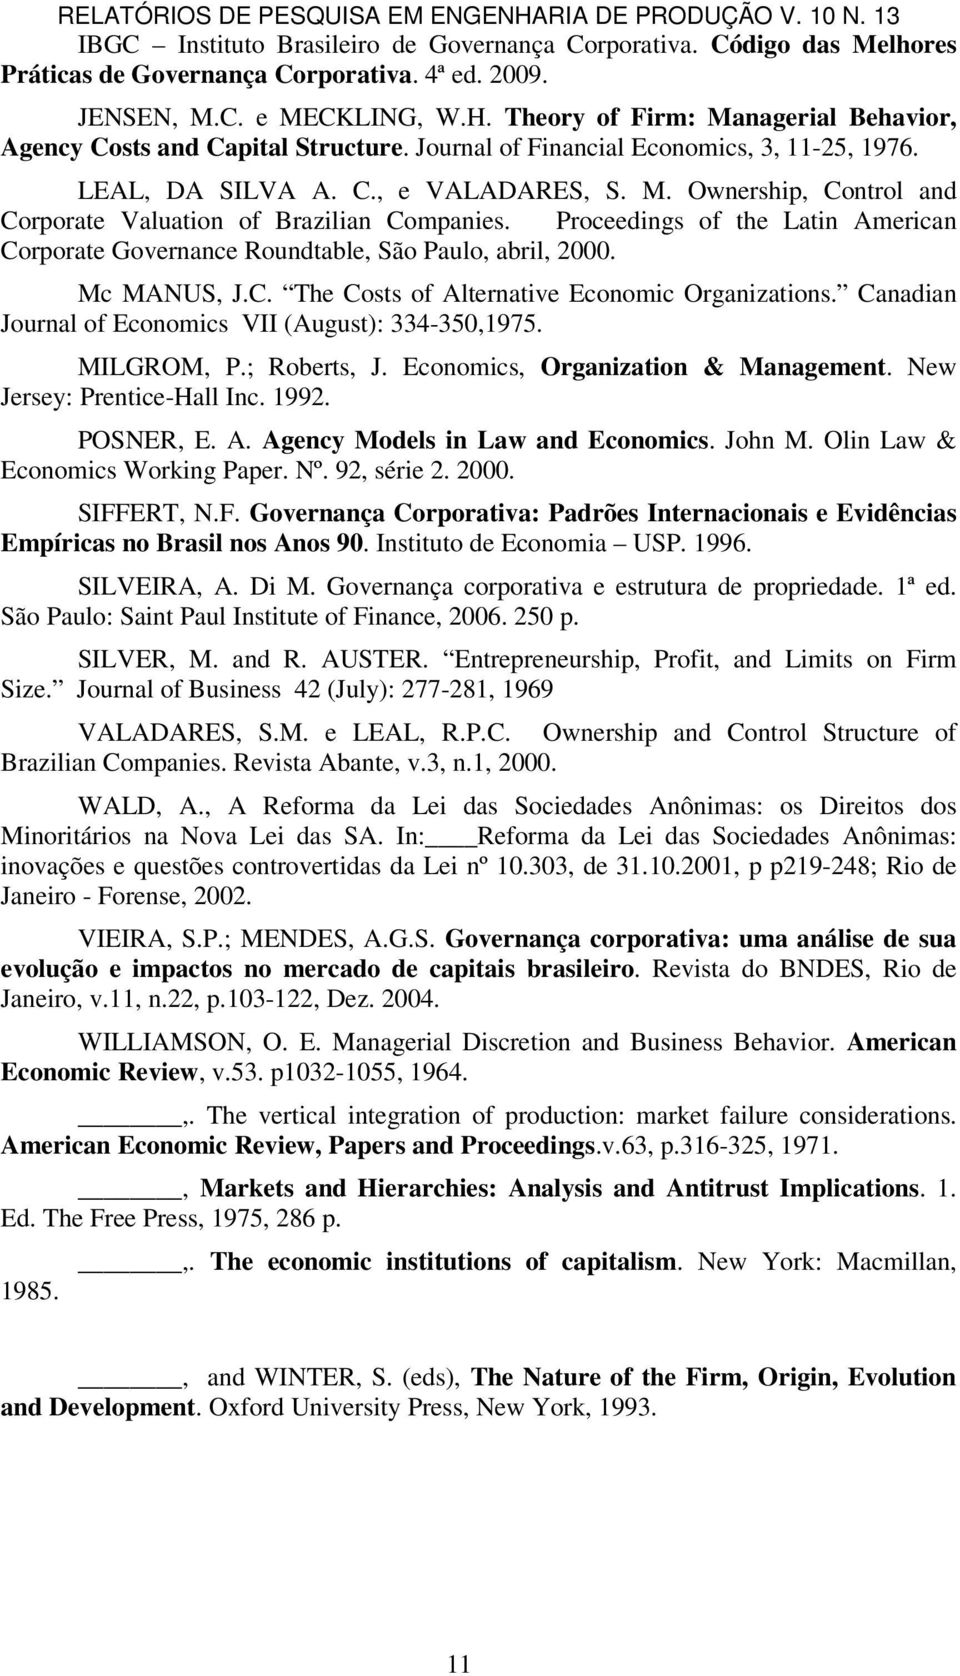 Proceedings of the Latin American Corporate Governance Roundtable, São Paulo, abril, 2000. Mc MANUS, J.C. The Costs of Alternative Economic Organizations.